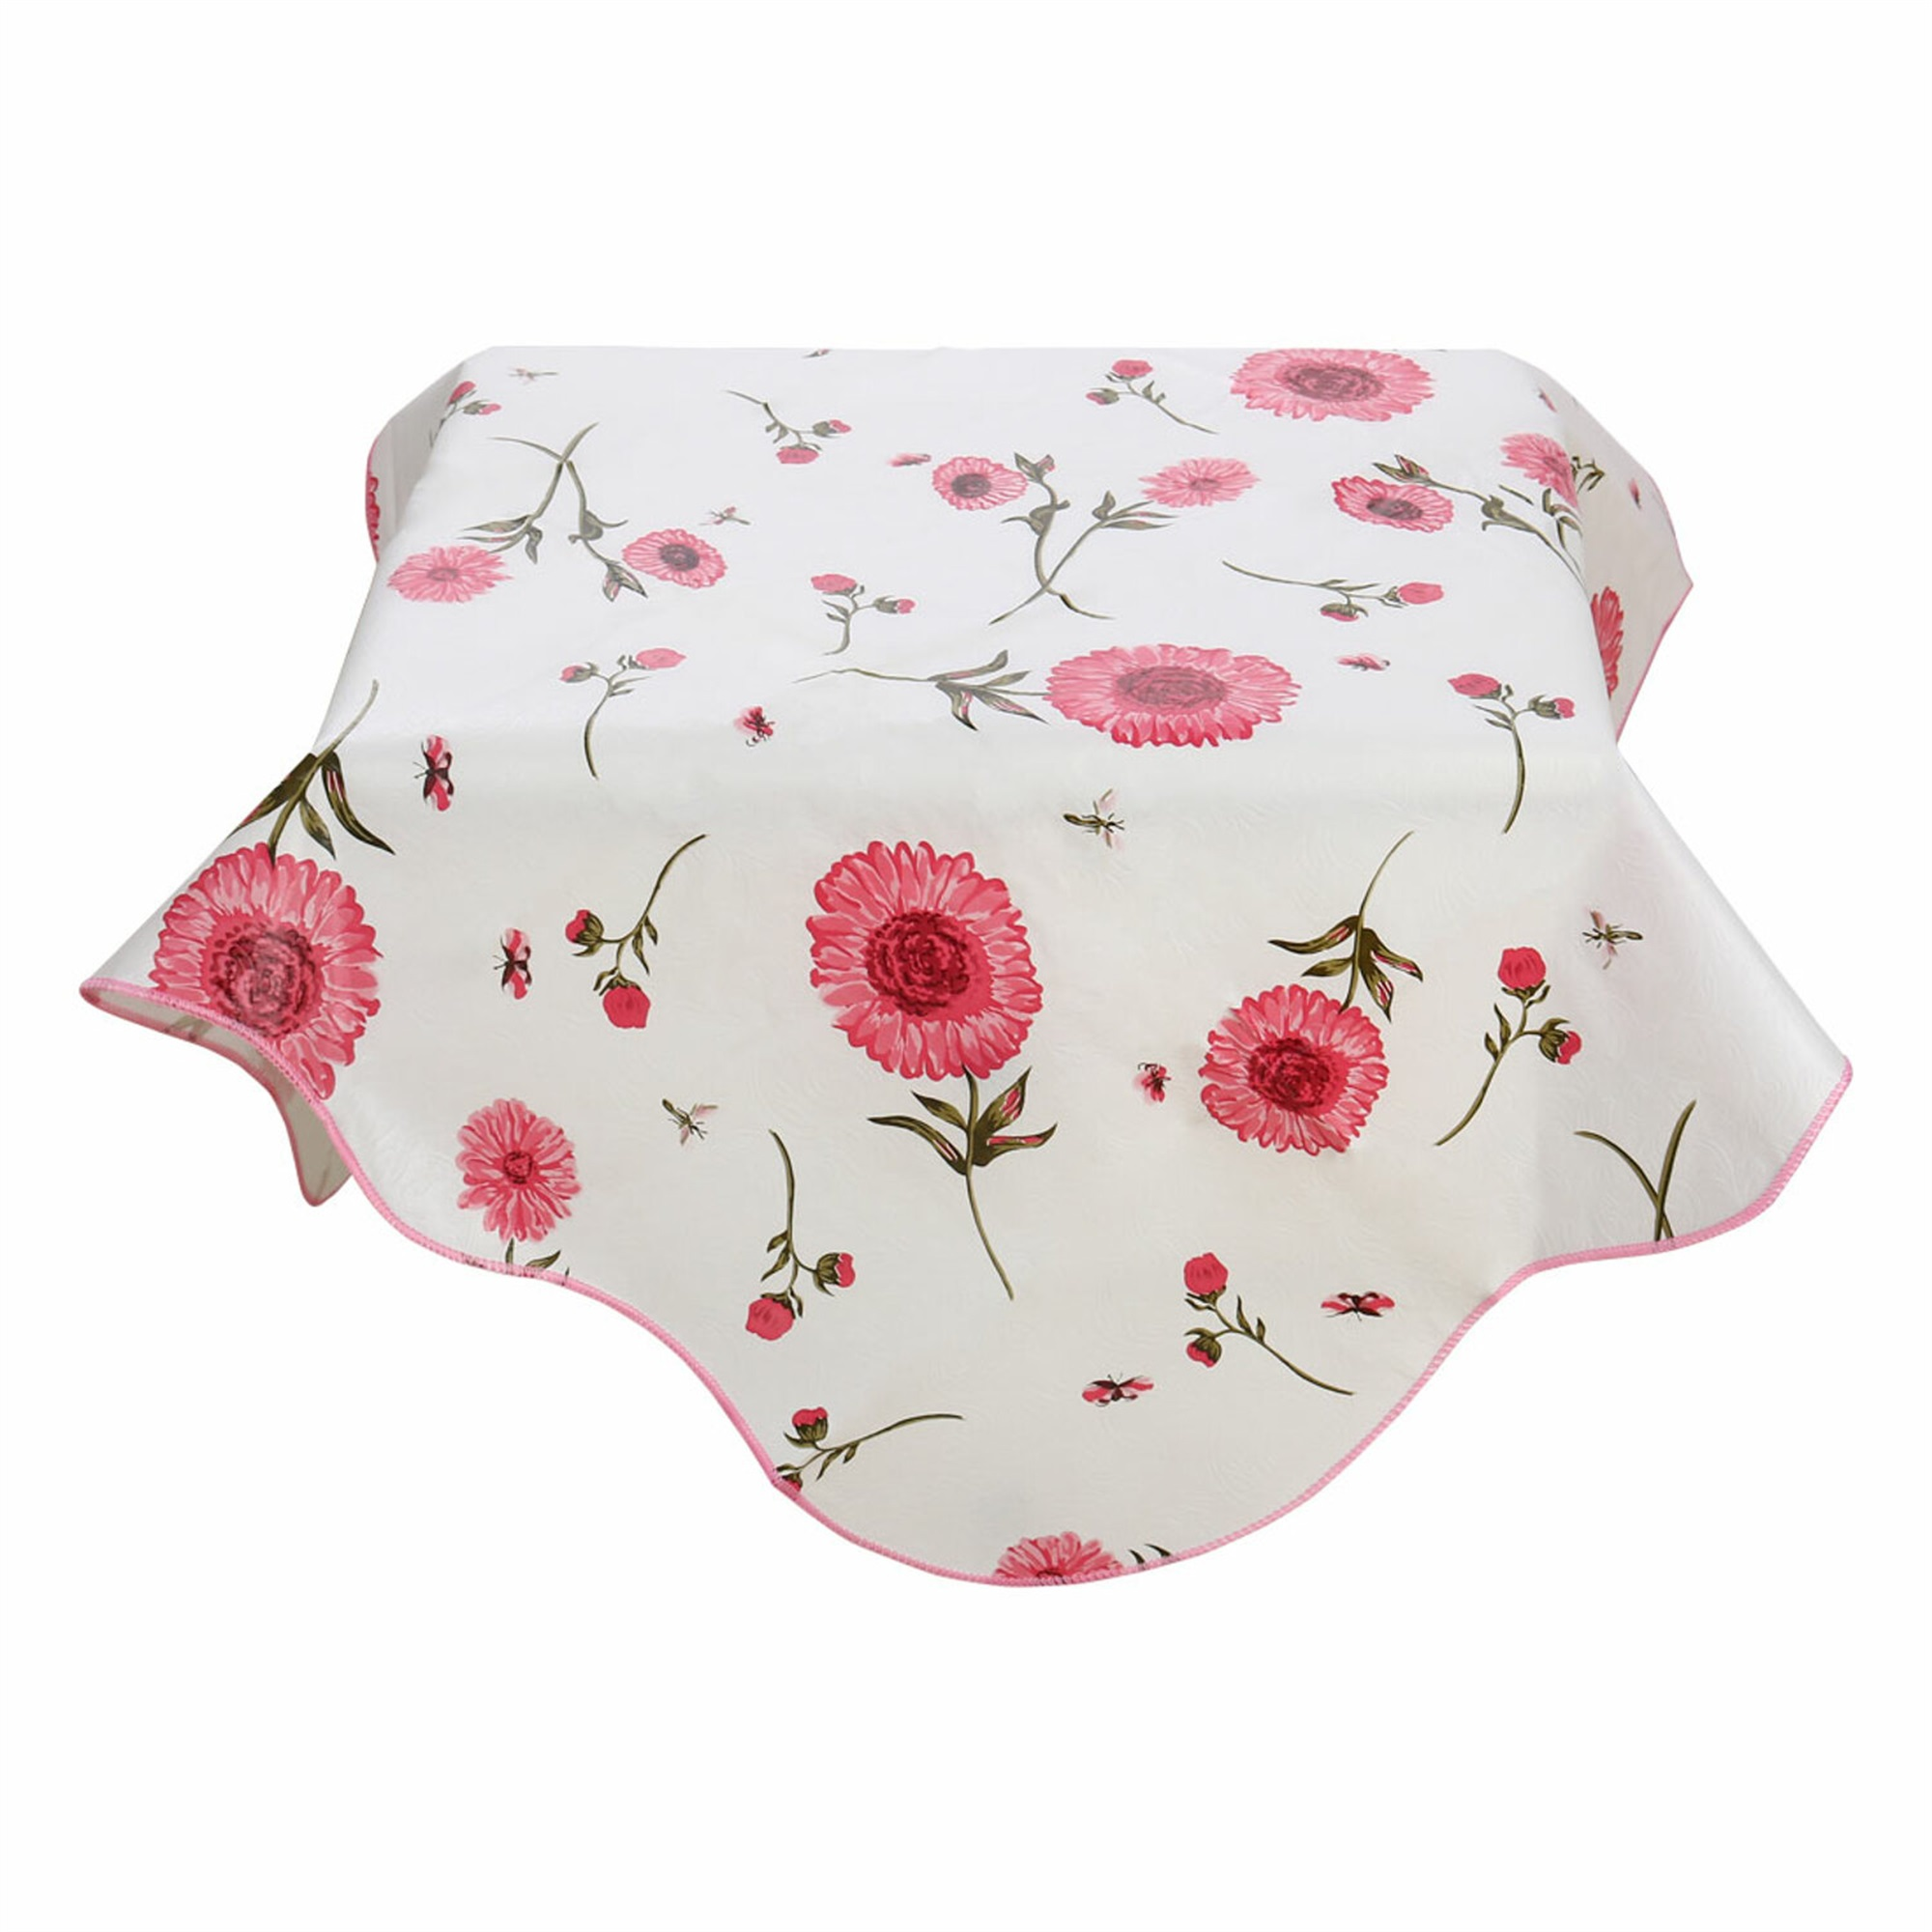 Home Picnic Square Sunflower Pattern Water Resistant Oil-proof Tablecloth Table Cloth Cover Pink 35 x 35 Inch